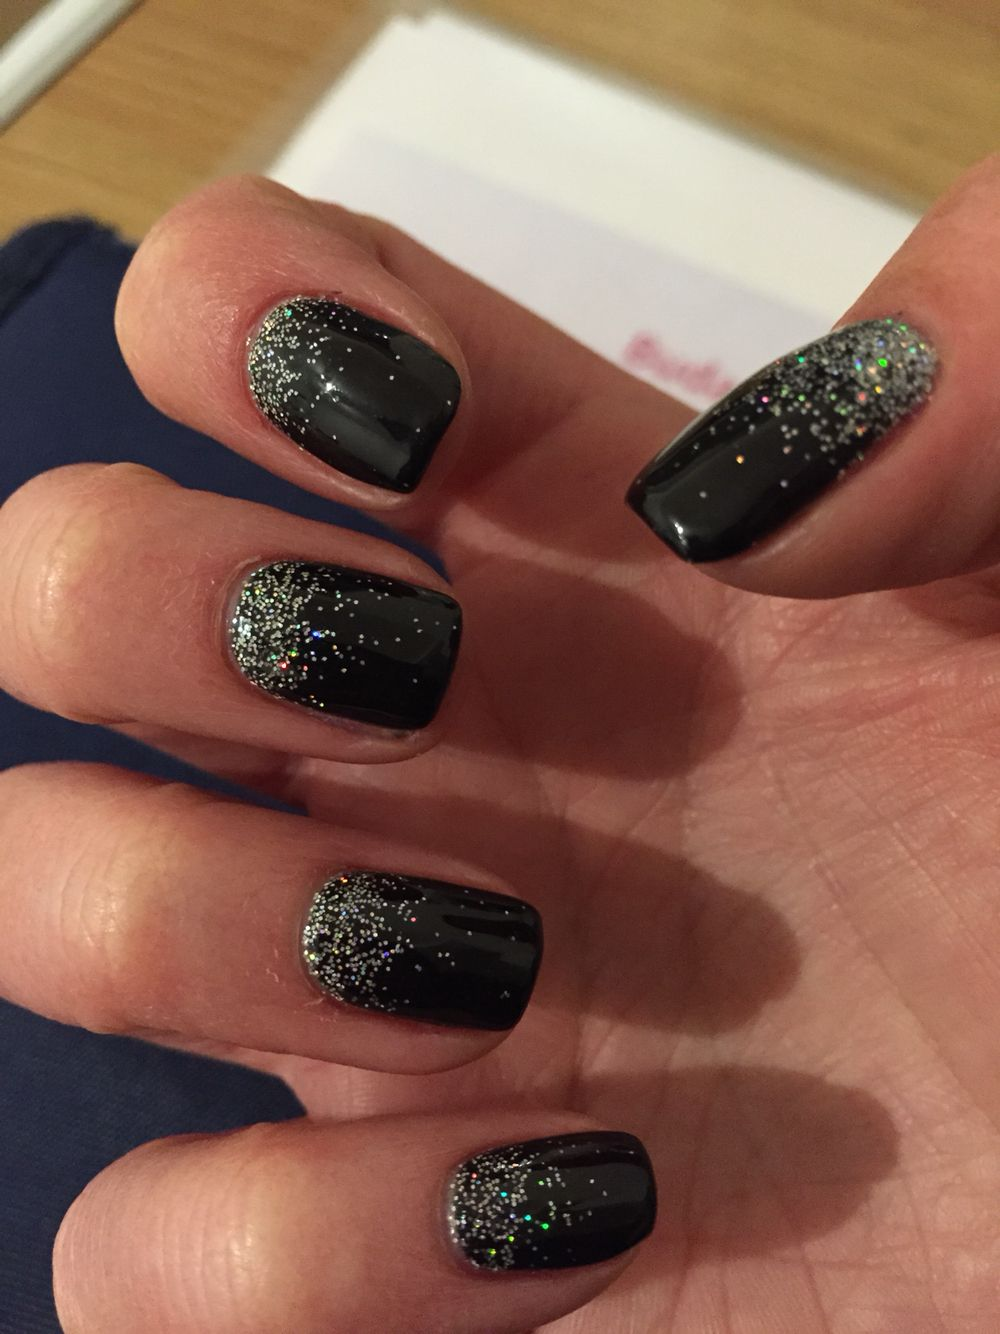 Black Shellac Silver Glitter Nails Nails In 2019 Shellac Nails Black Shellac Nails Silver